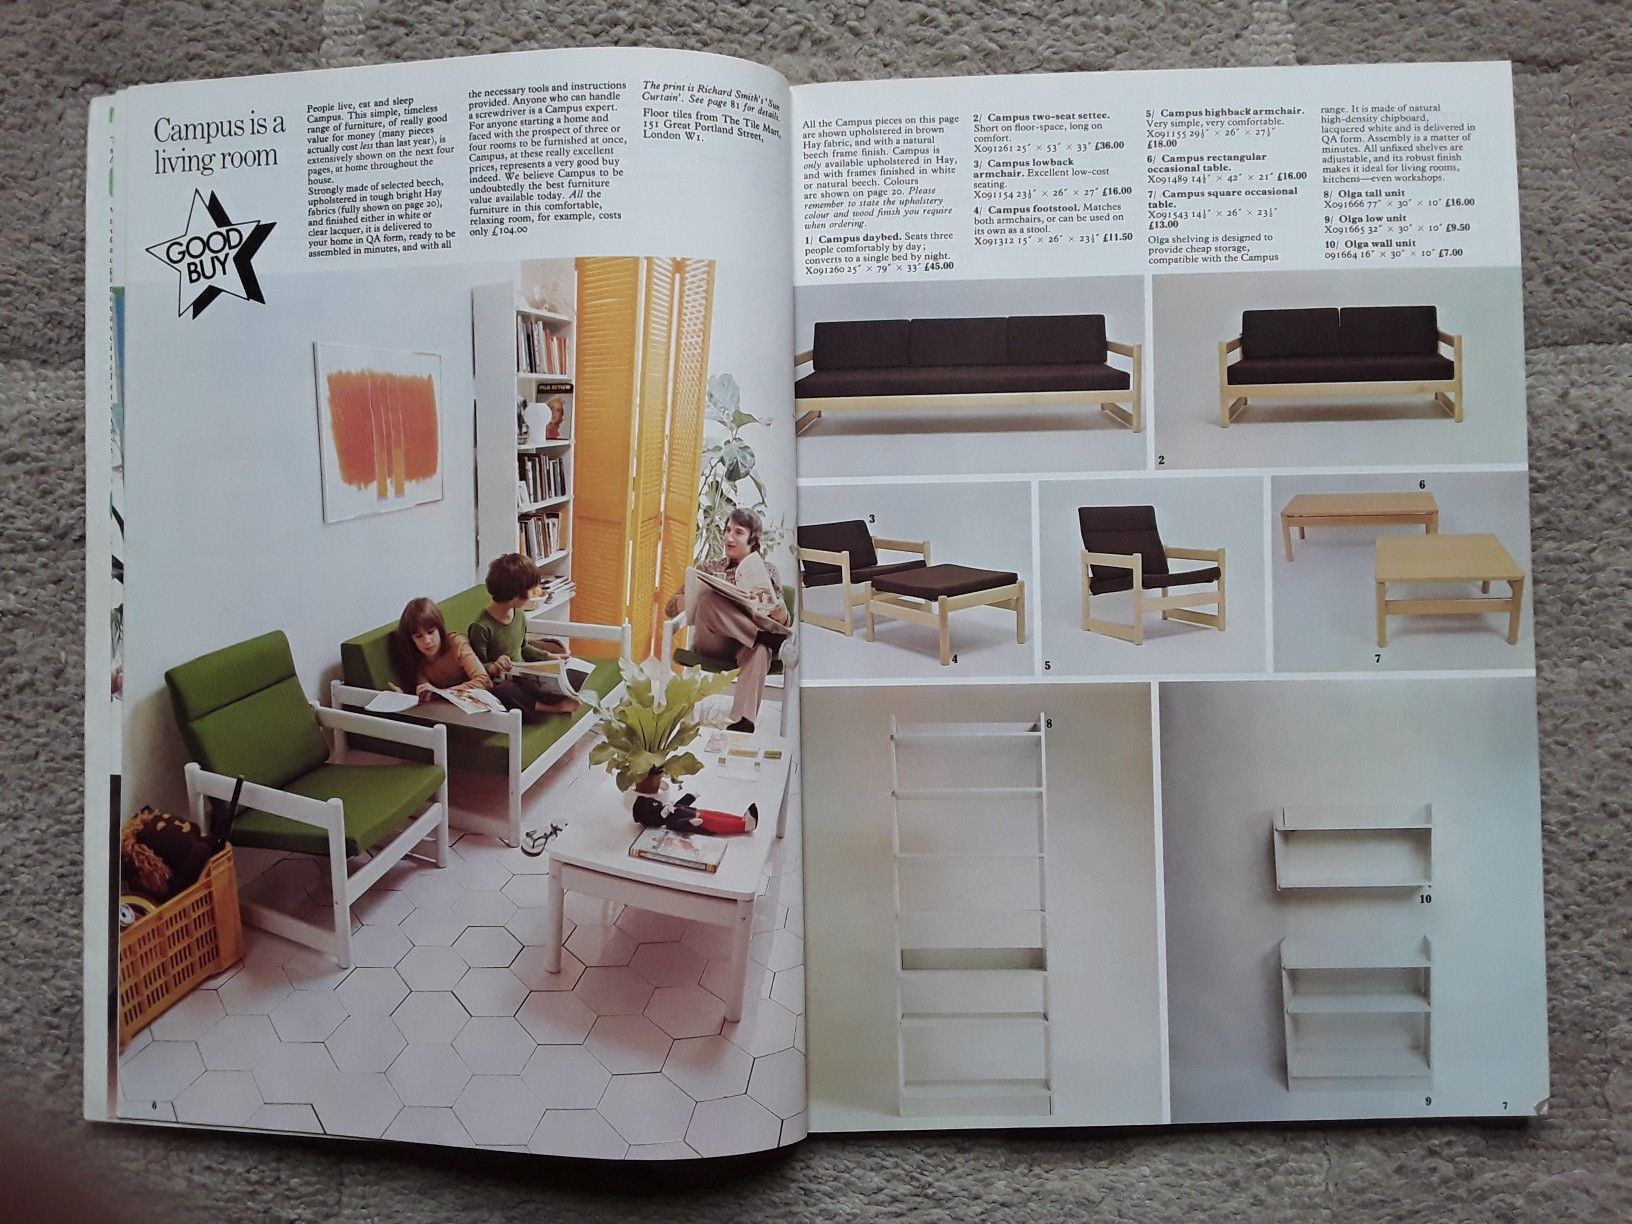 Habitat Catalogue 1972 1970s Decor Vintage Interiors Decor